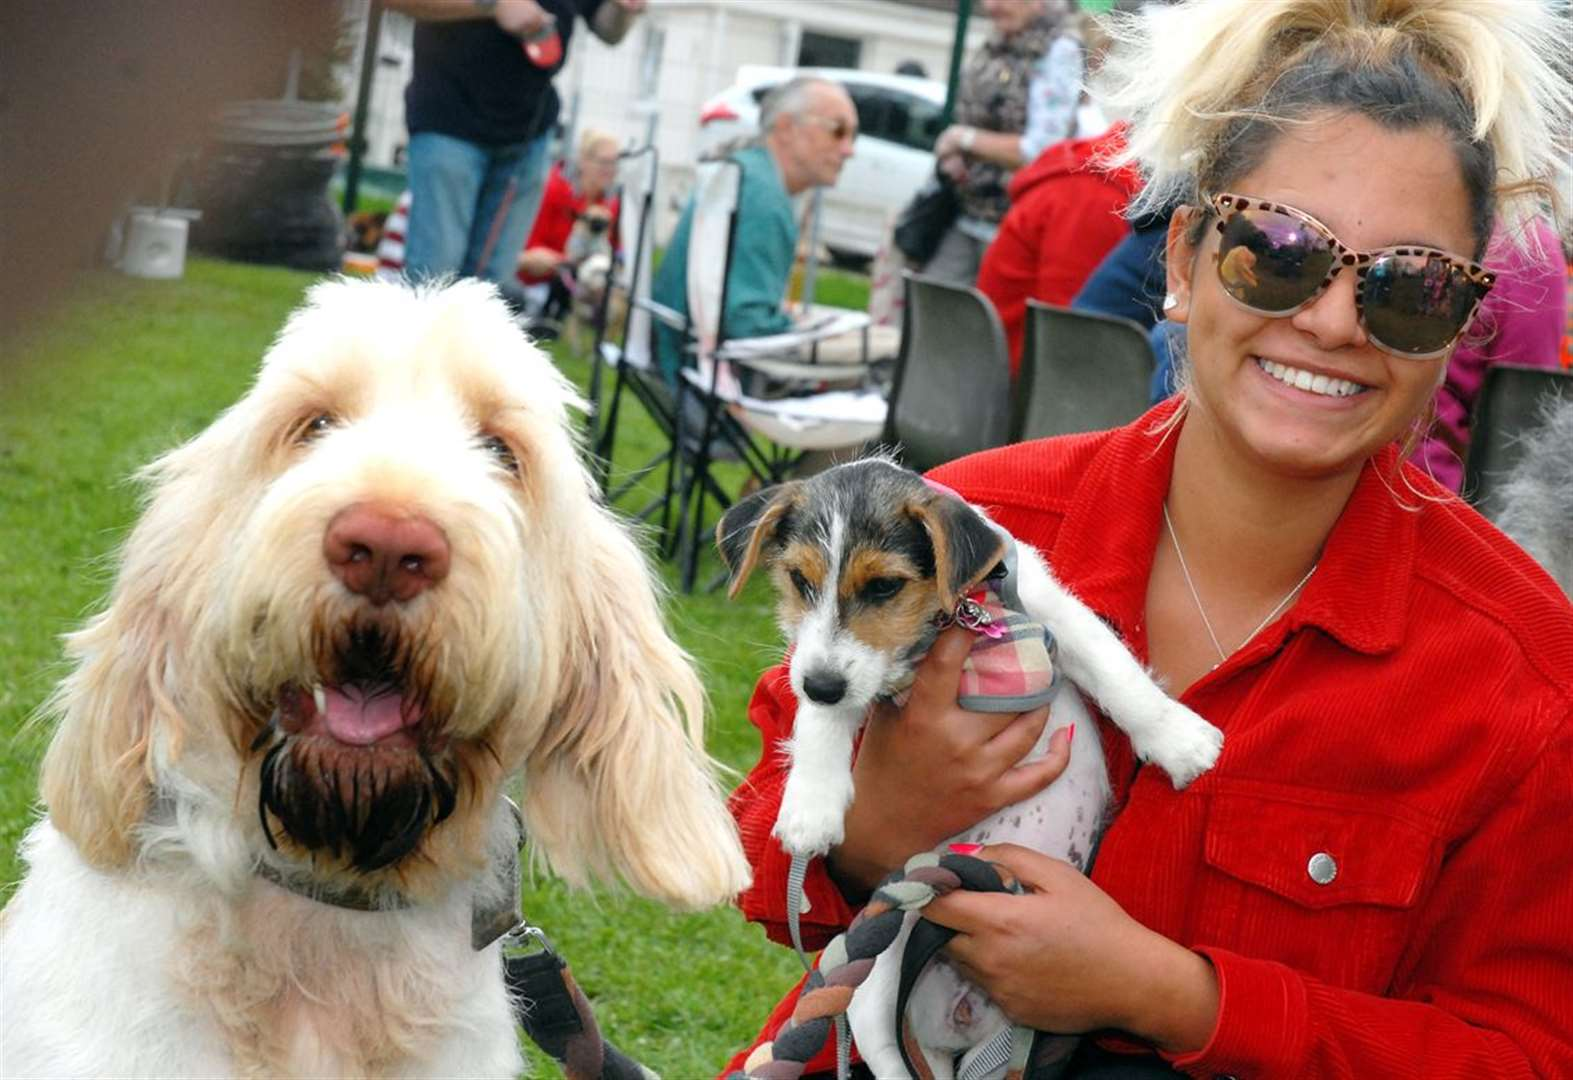 Canine capers raised funds to help dogs find new homes